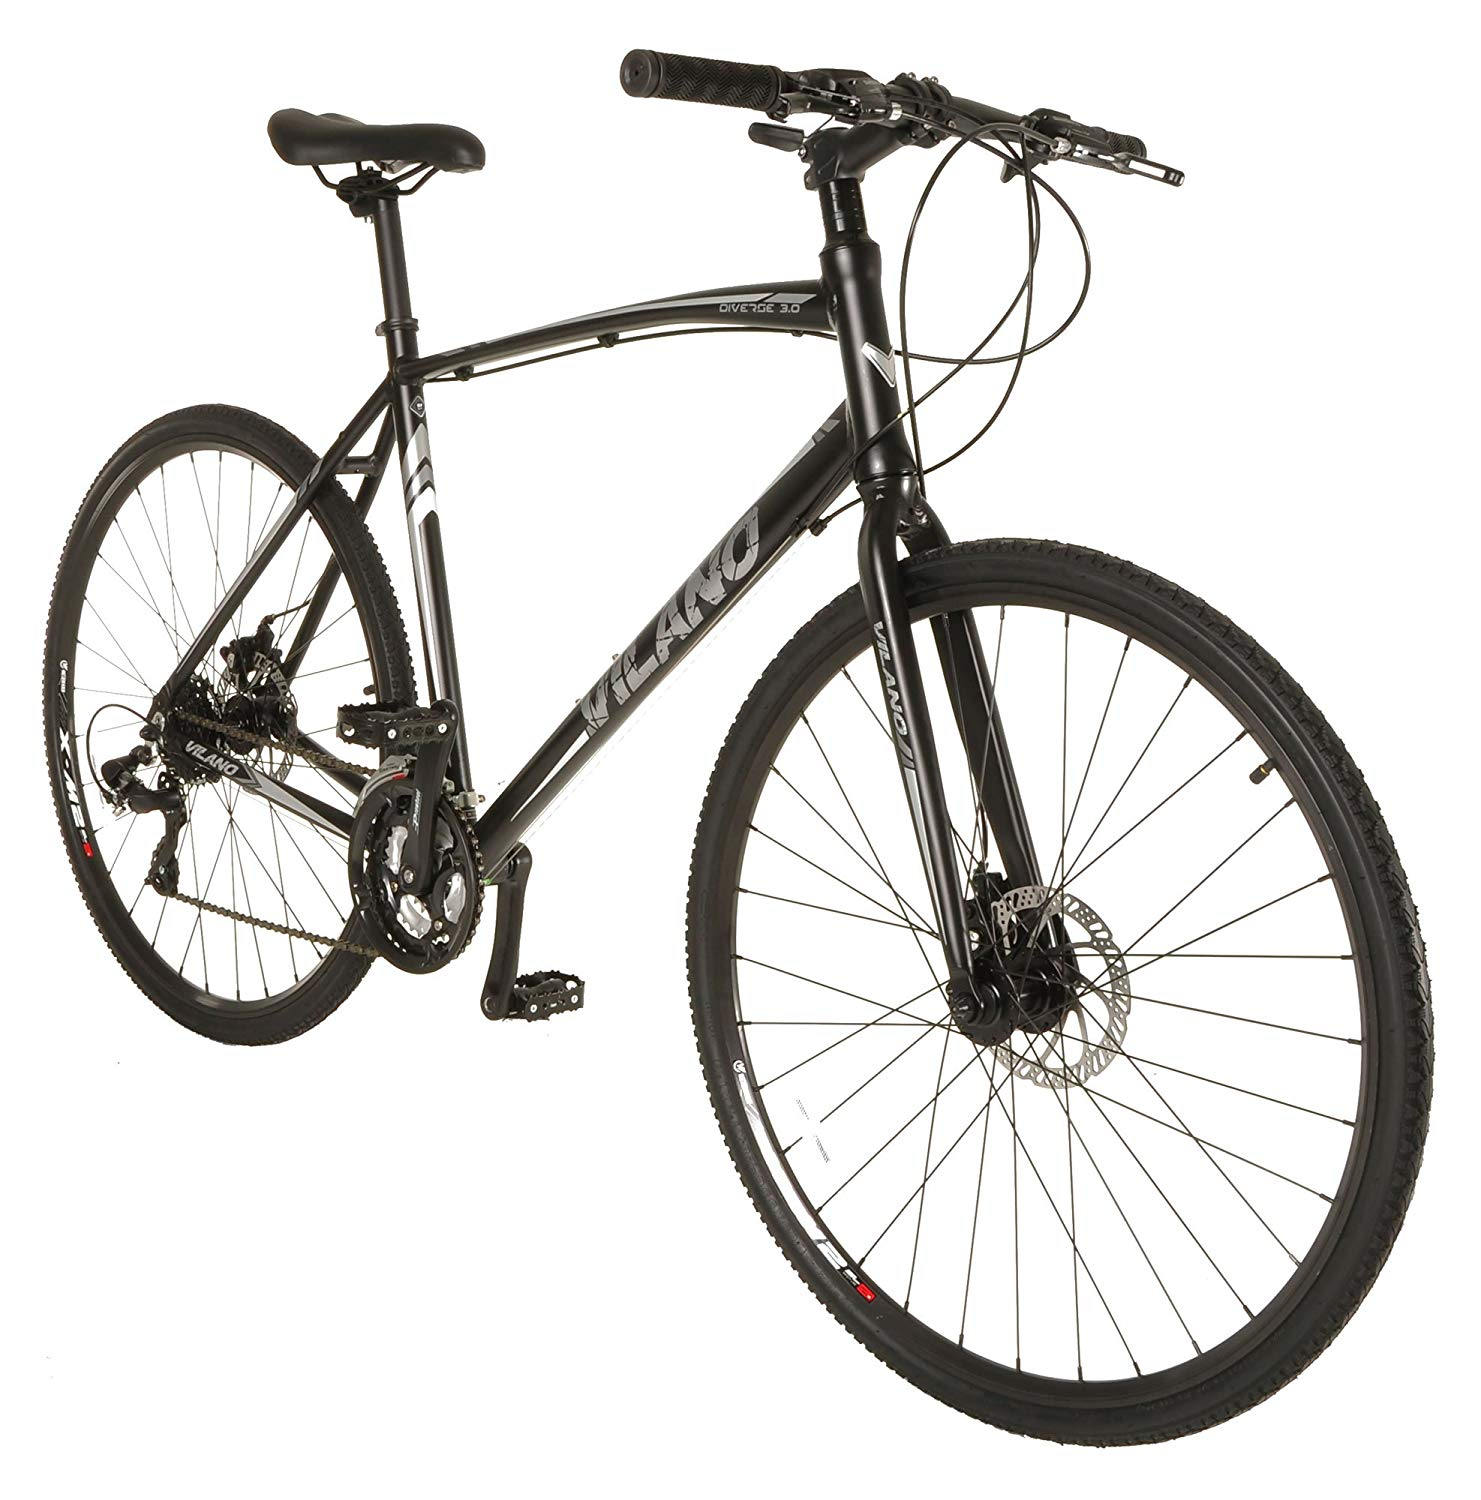 Vilano Diverse 3.0 Performance Hybrid Road Commuter Bike, 24-Speed